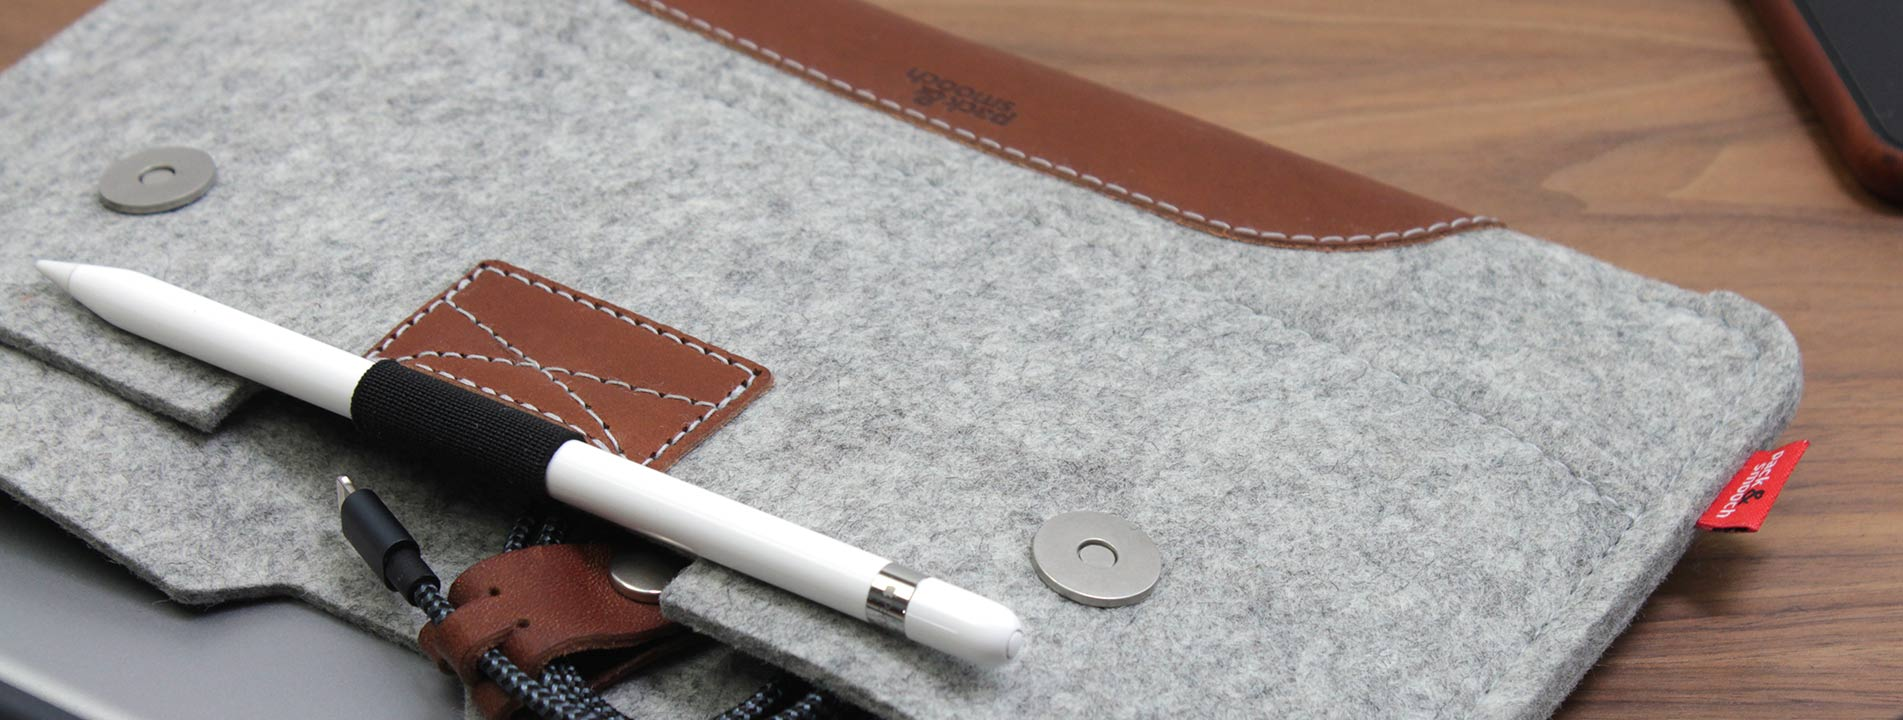 iPad Pro sleeves handcrafted by Pack & Smooch of Merino wool felt and genuine leather